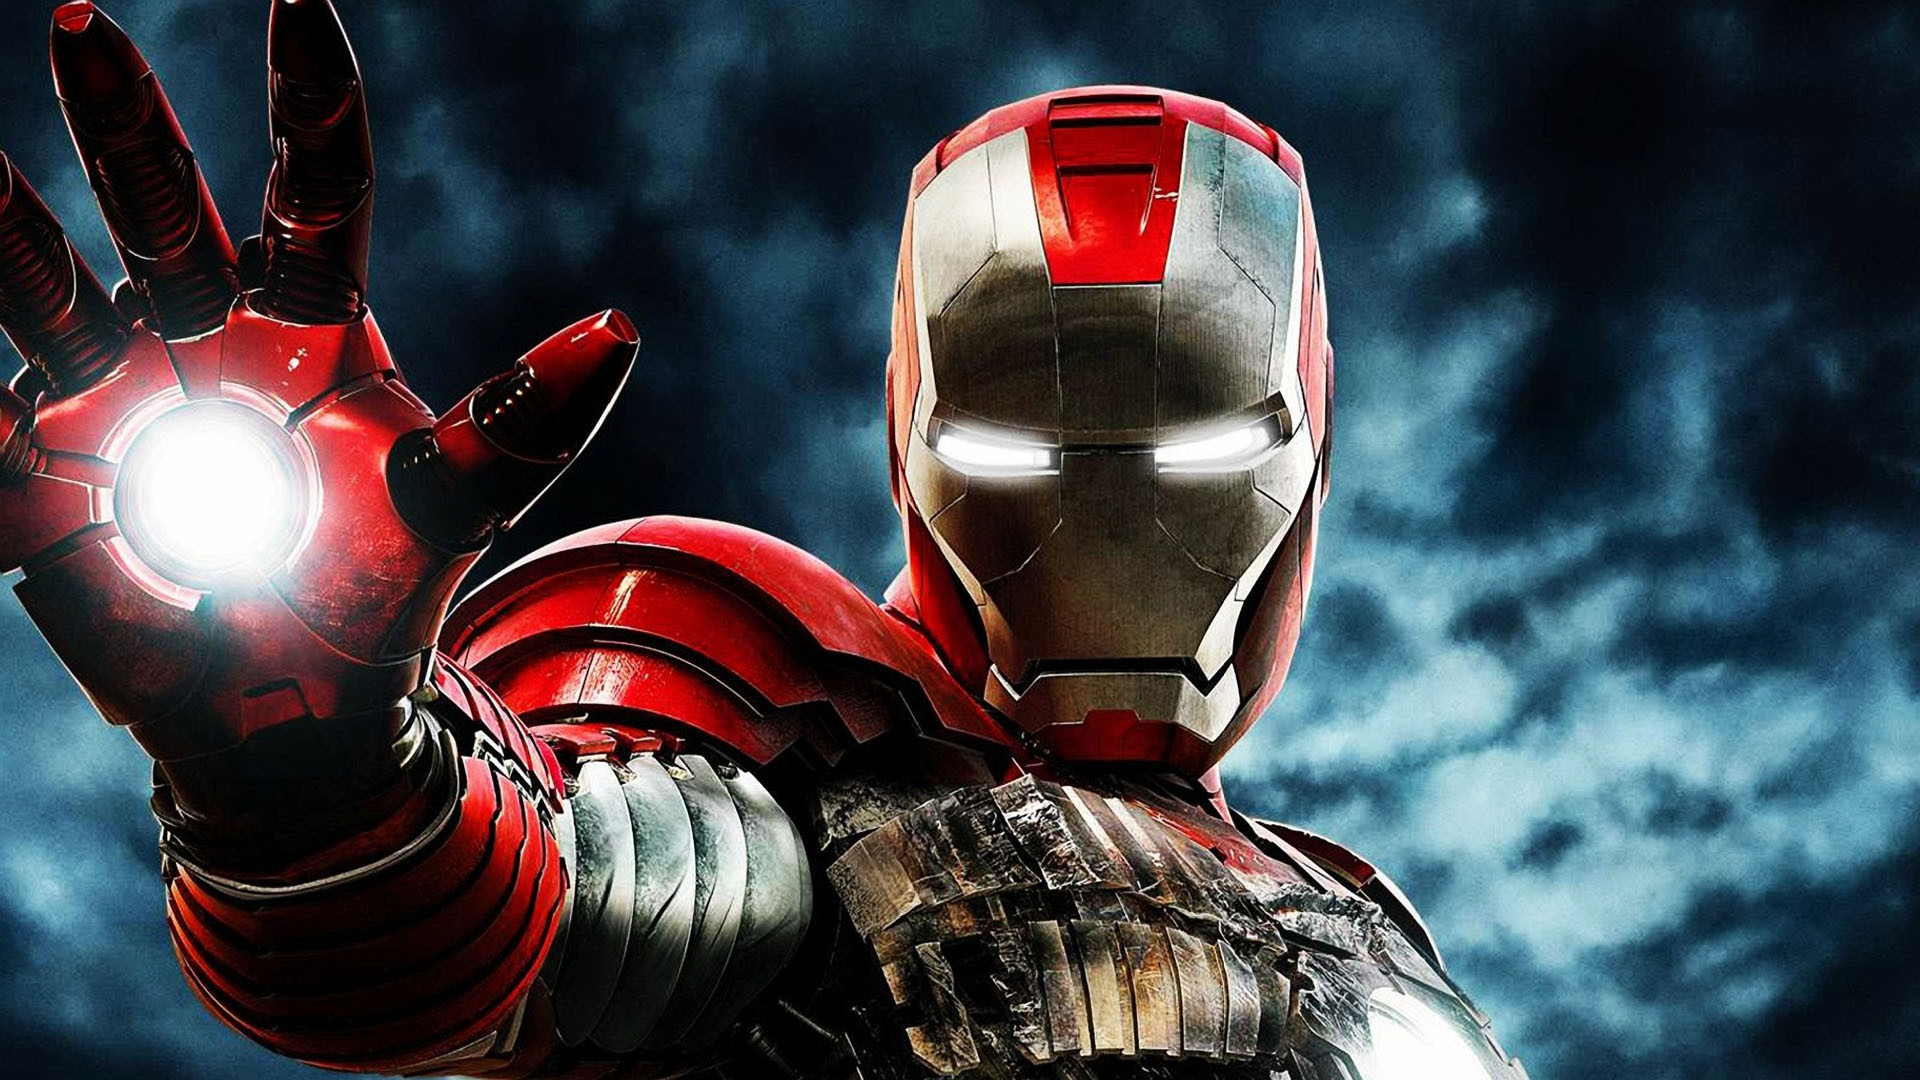 ironman wallpaper: